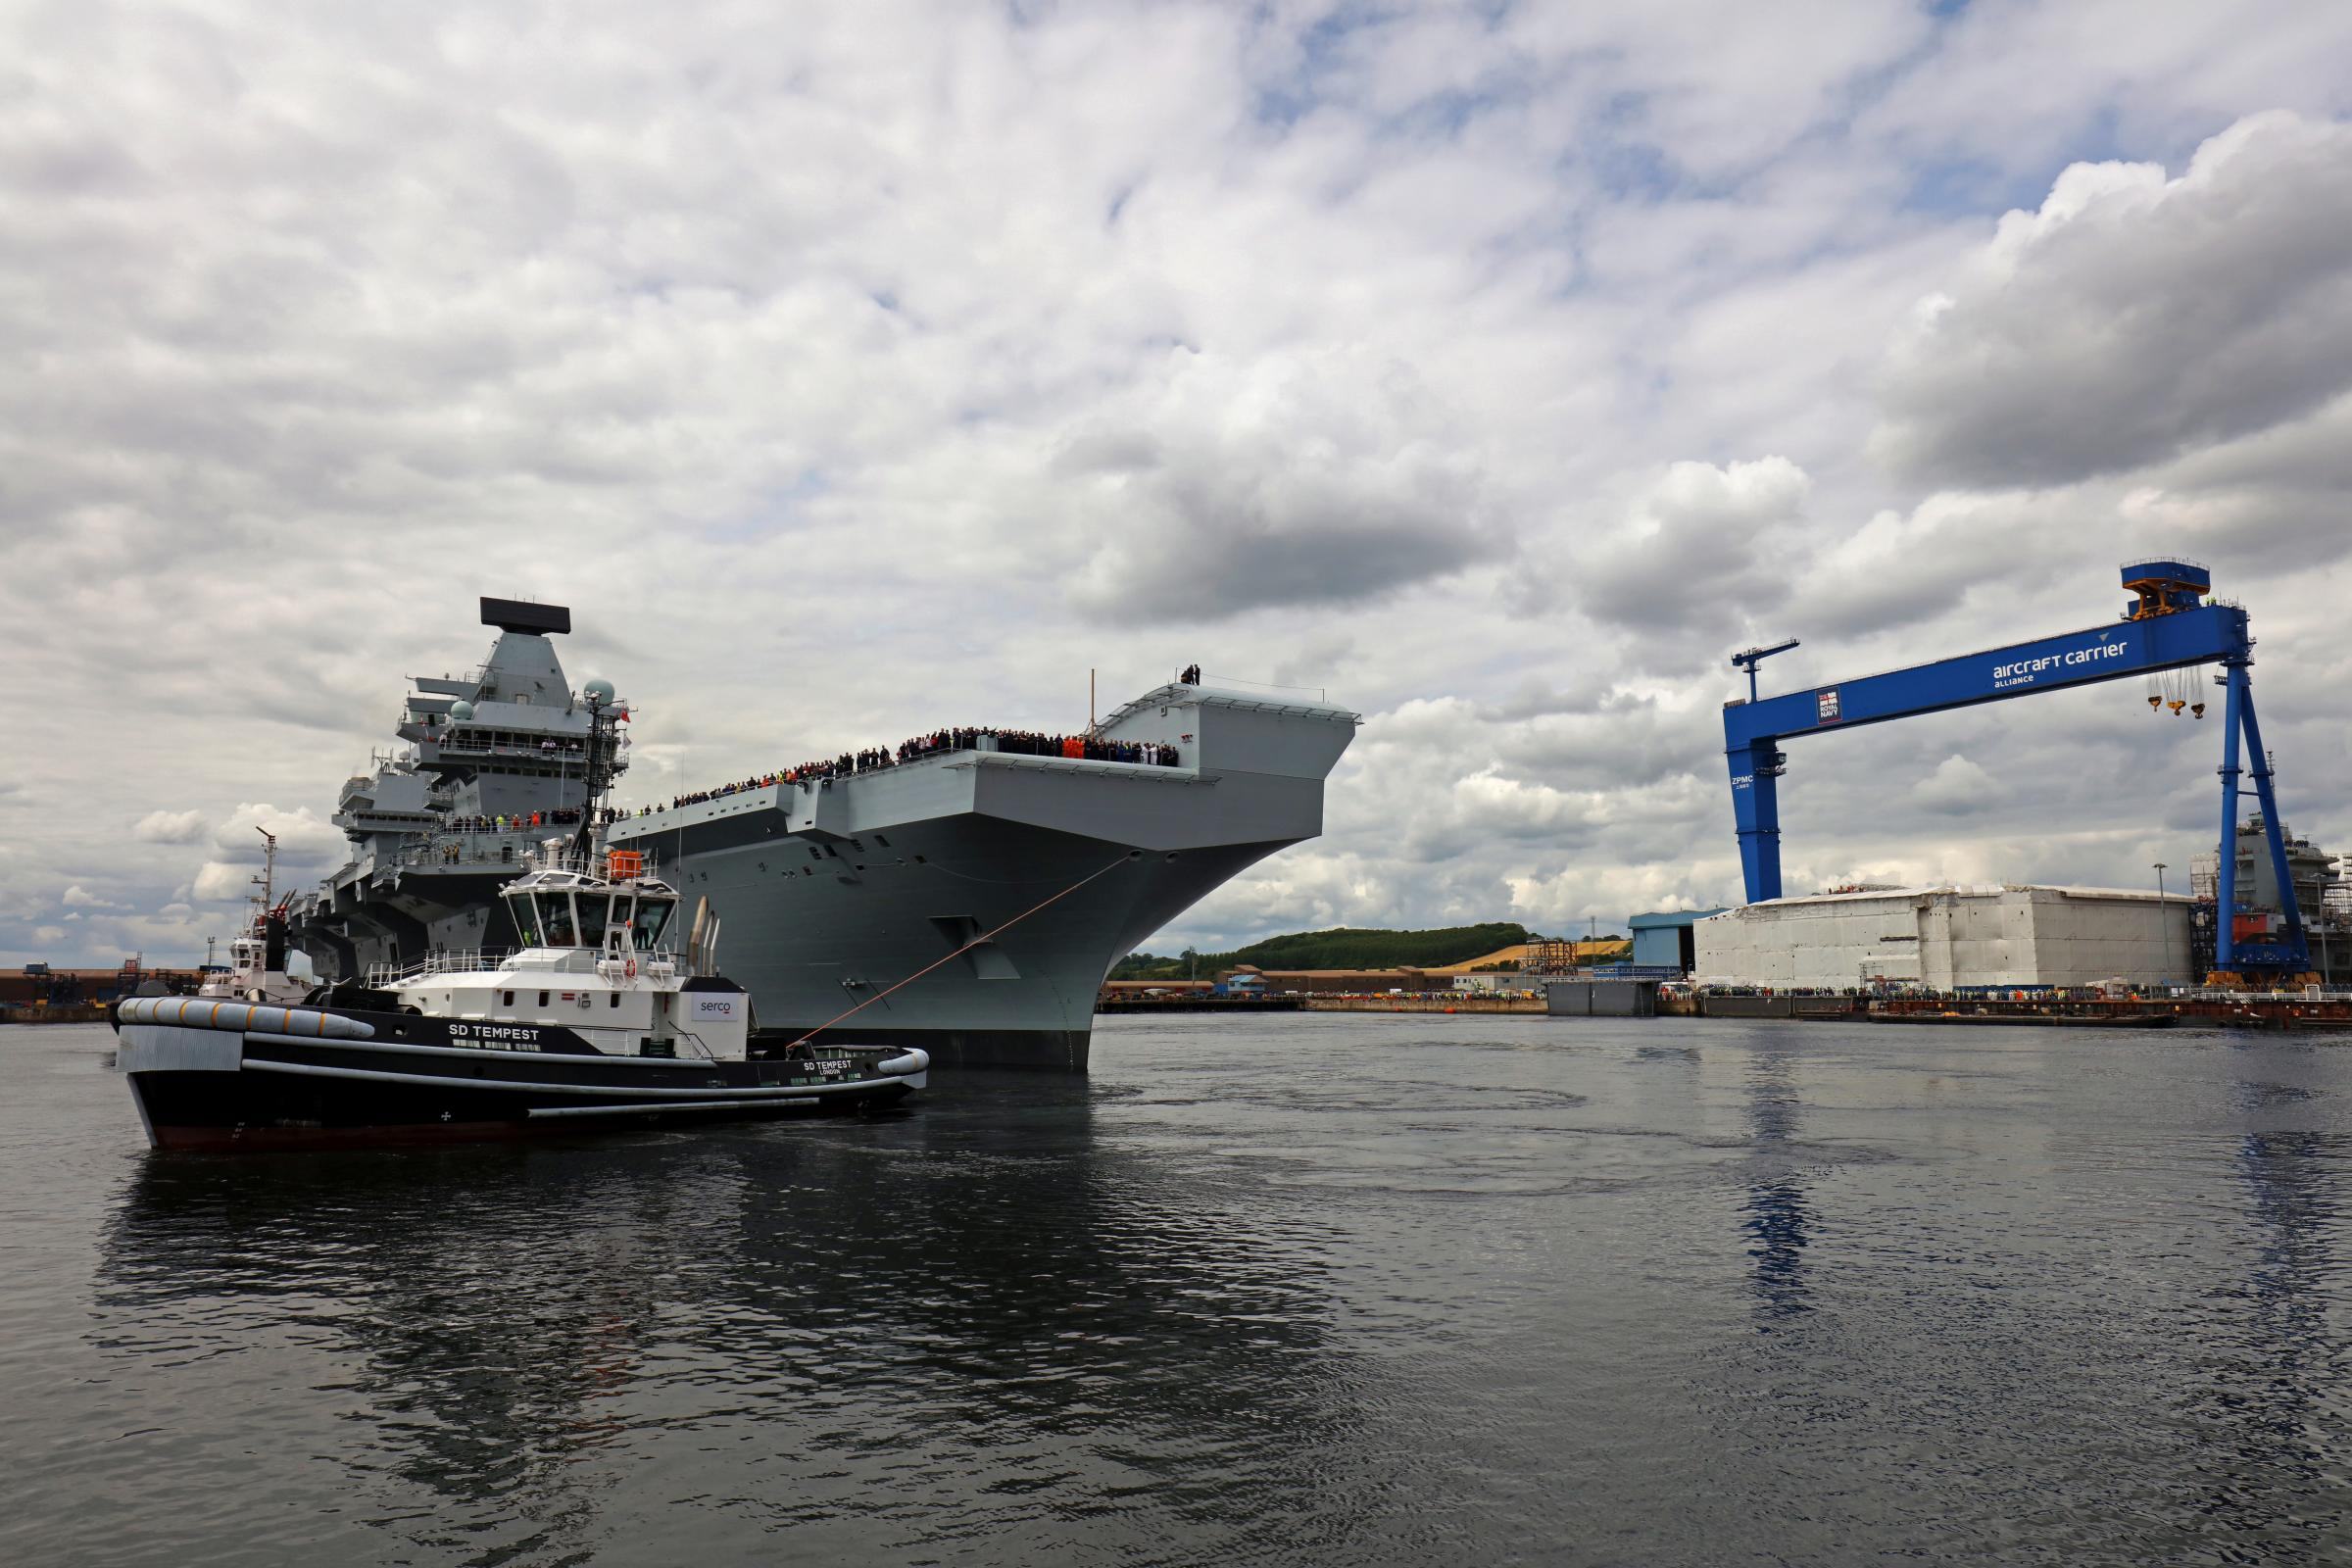 Scottish jobs boost as Babcock win race to build Royal Navy frigates